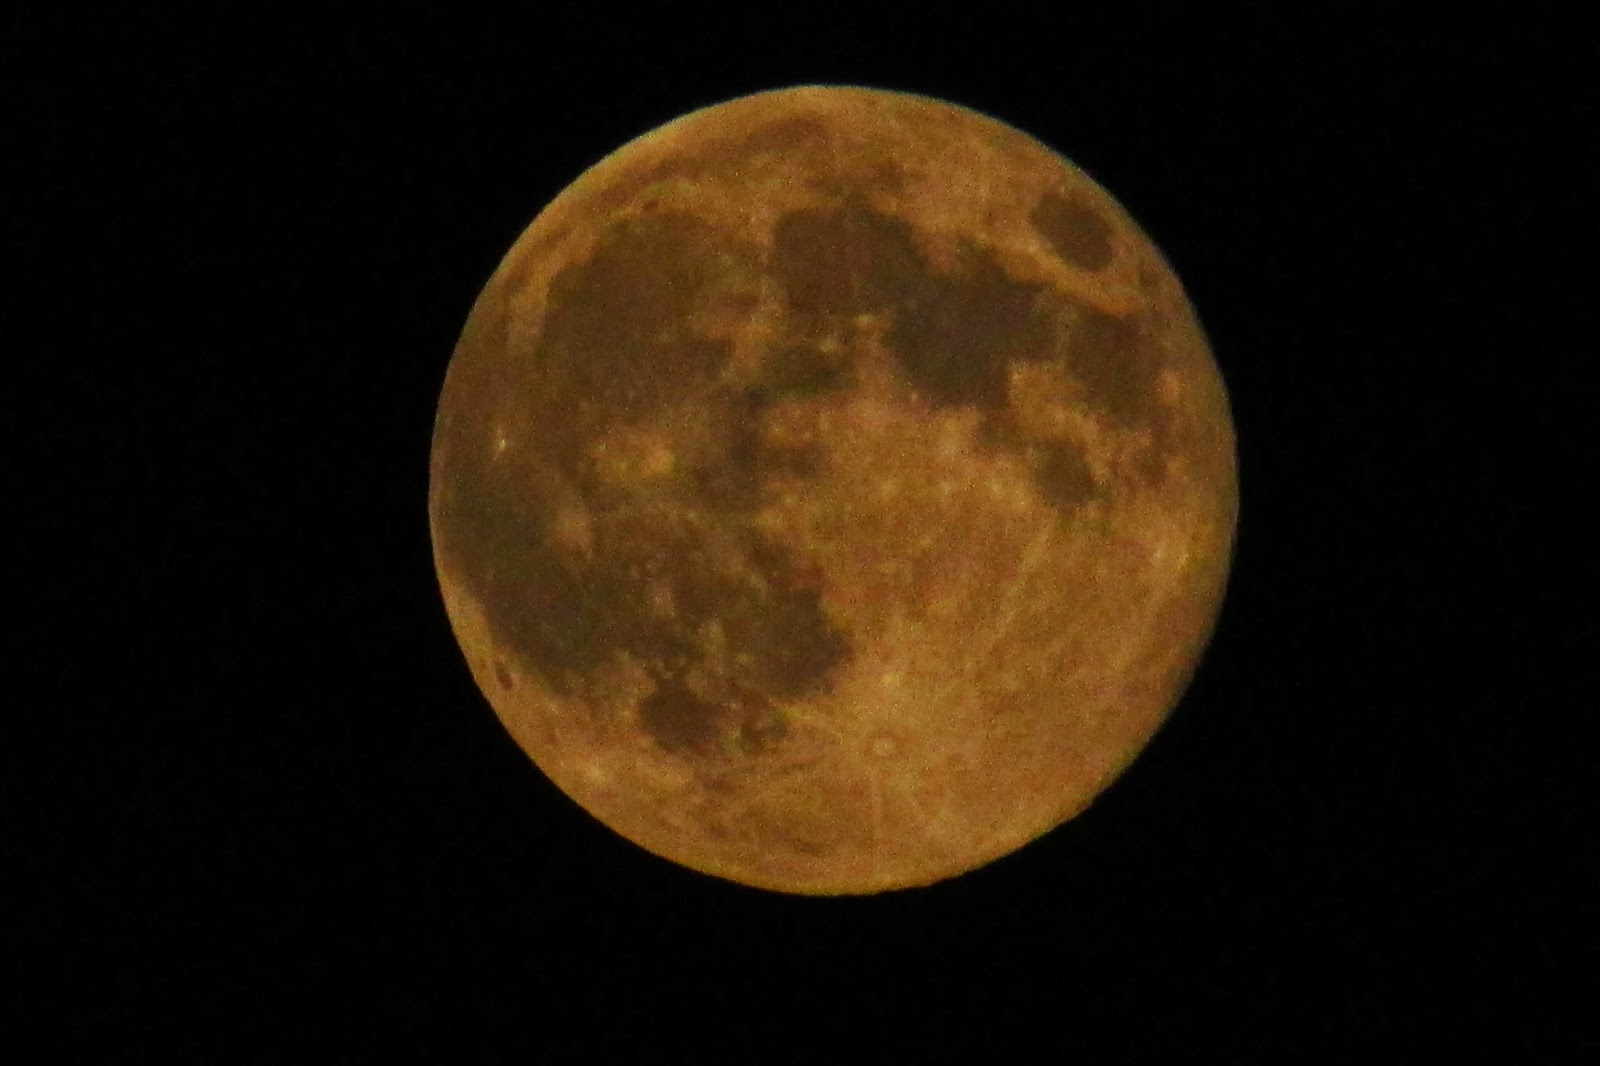 nyc supermoon photo closeup